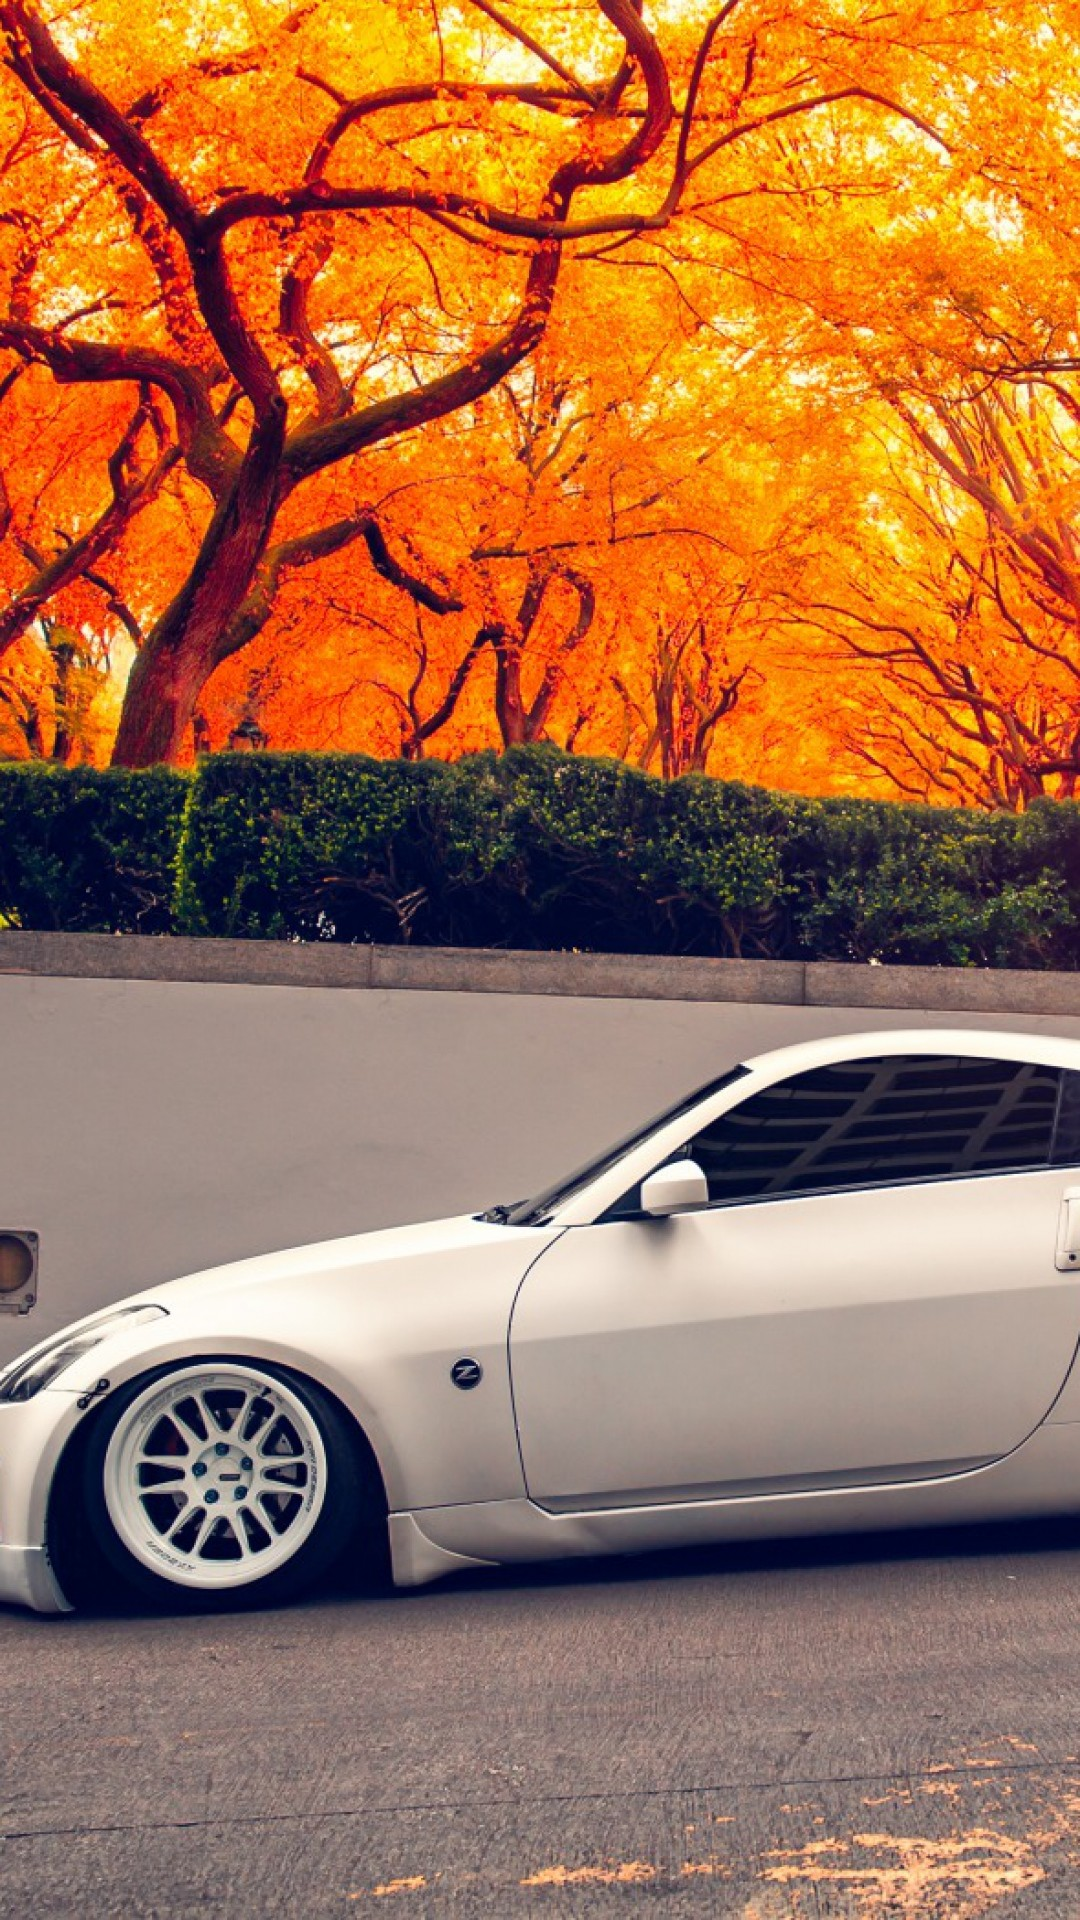 Res: 1080x1920, 350z stance autumn sports car wallpaper cool colourful download free best  apple display picture